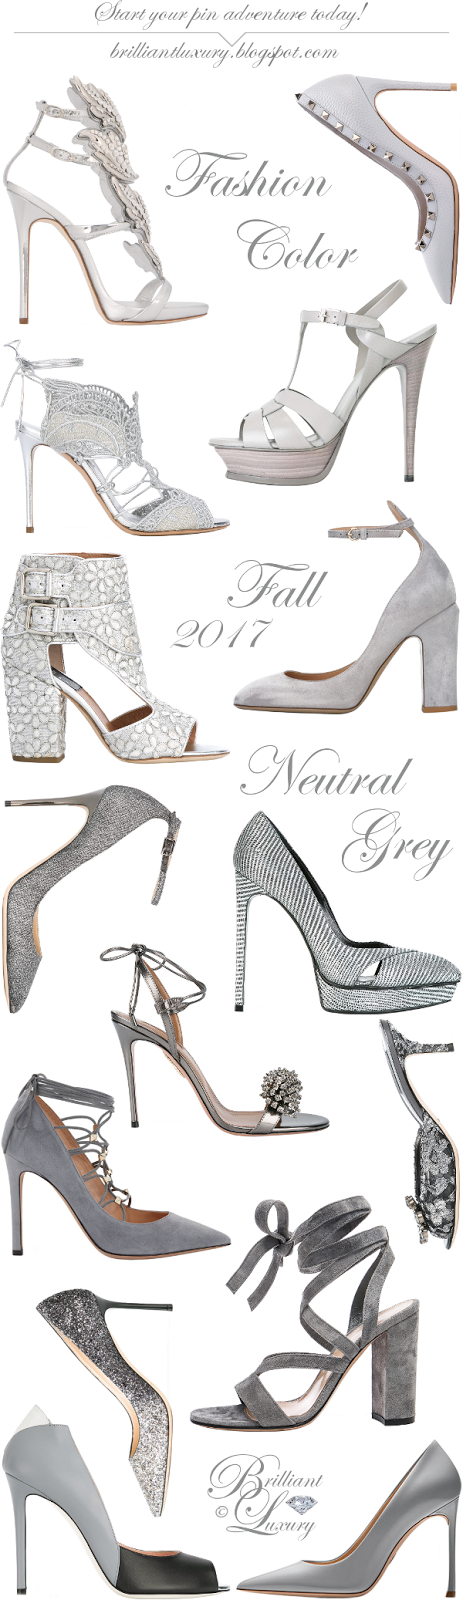 Brilliant Luxury ♦ Fashion Color Fall 2017 ~ neutral grey ~ Part I